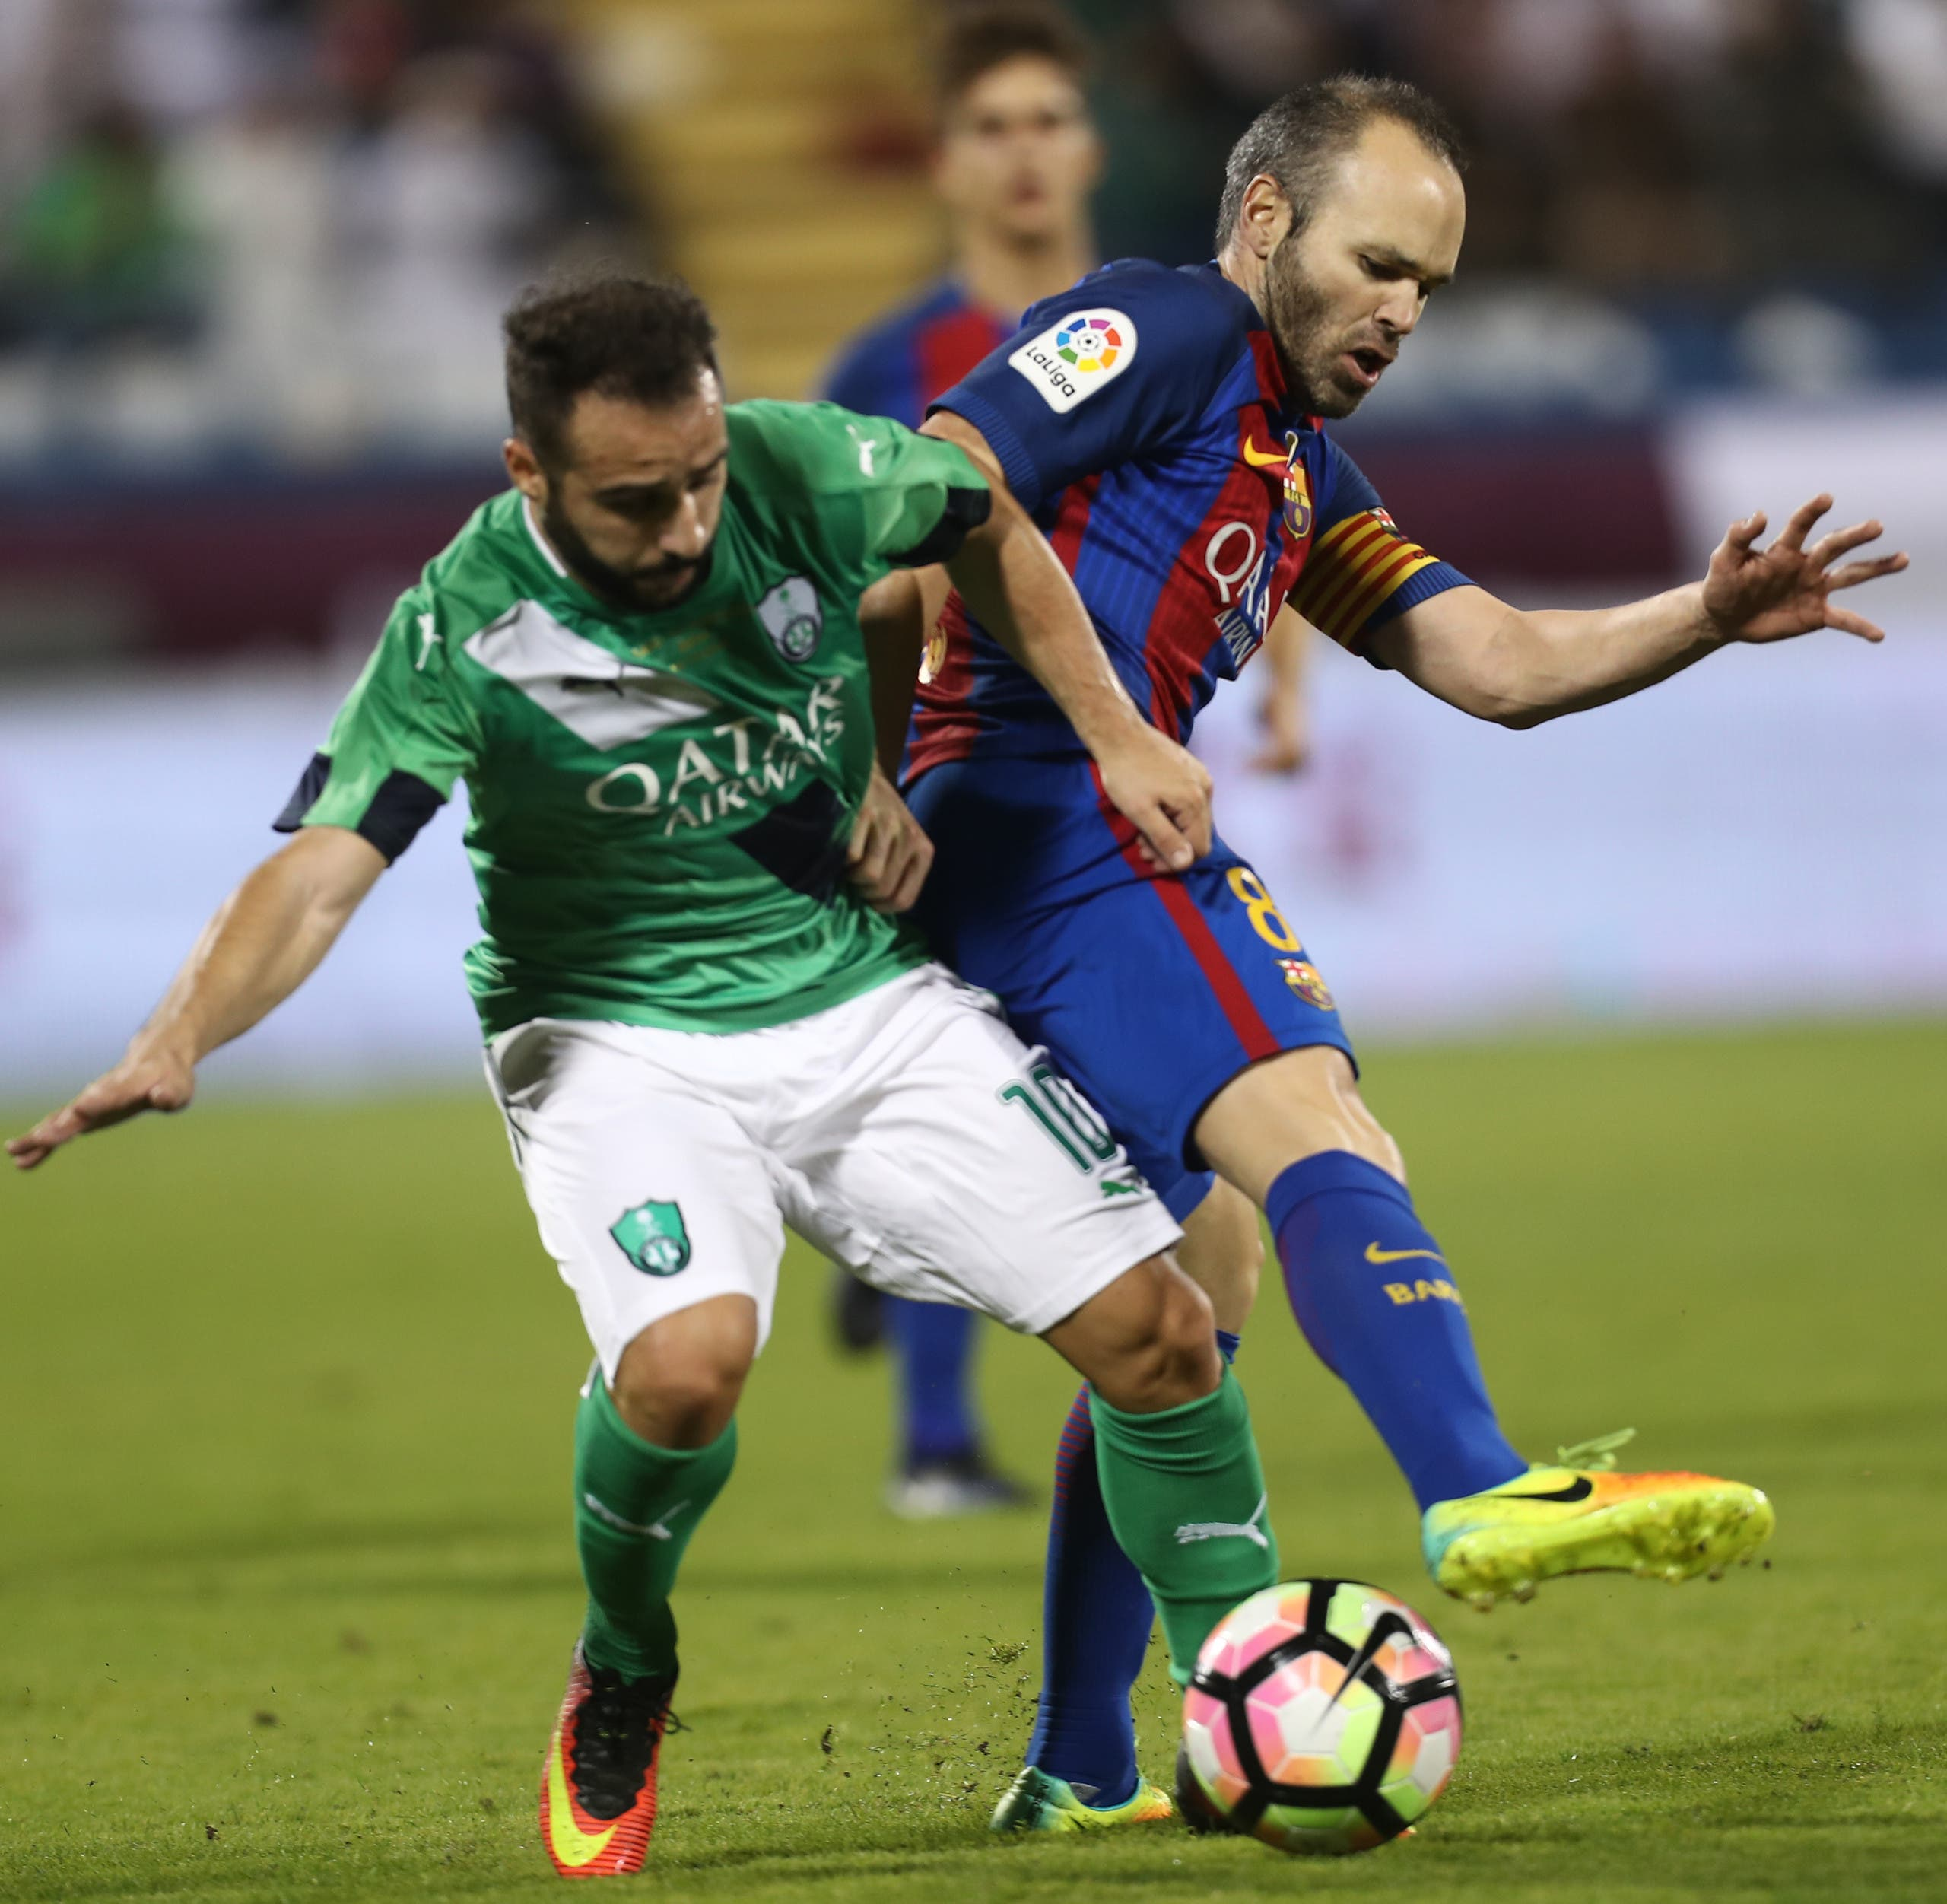 FC Barcelona's Andres Iniesta vies for the ball with Al-Ahly's Giannis Fetfatzidis during a friendly football match between FC Barcelona and Saudi Arabia's Al-Ahli FC on December 13, 2016 in the Qatari capital Doha. (AFP)